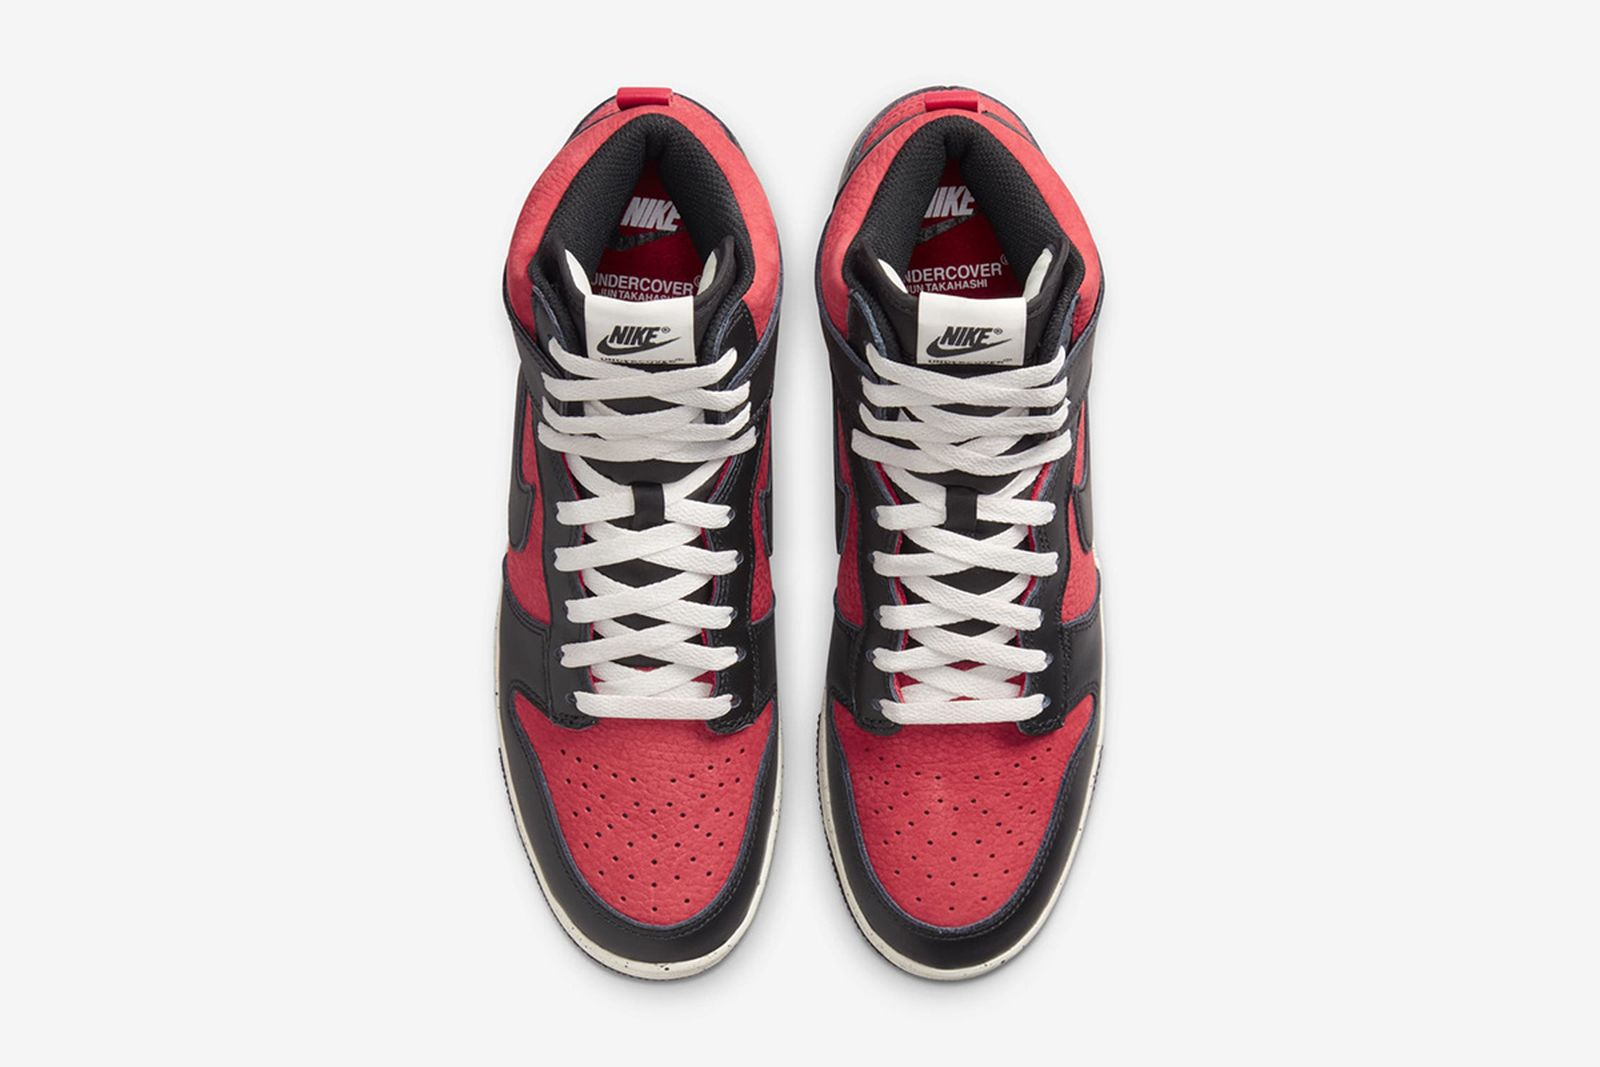 undercover-nike-dunk-high-1985-gym-red-release-date-price-04